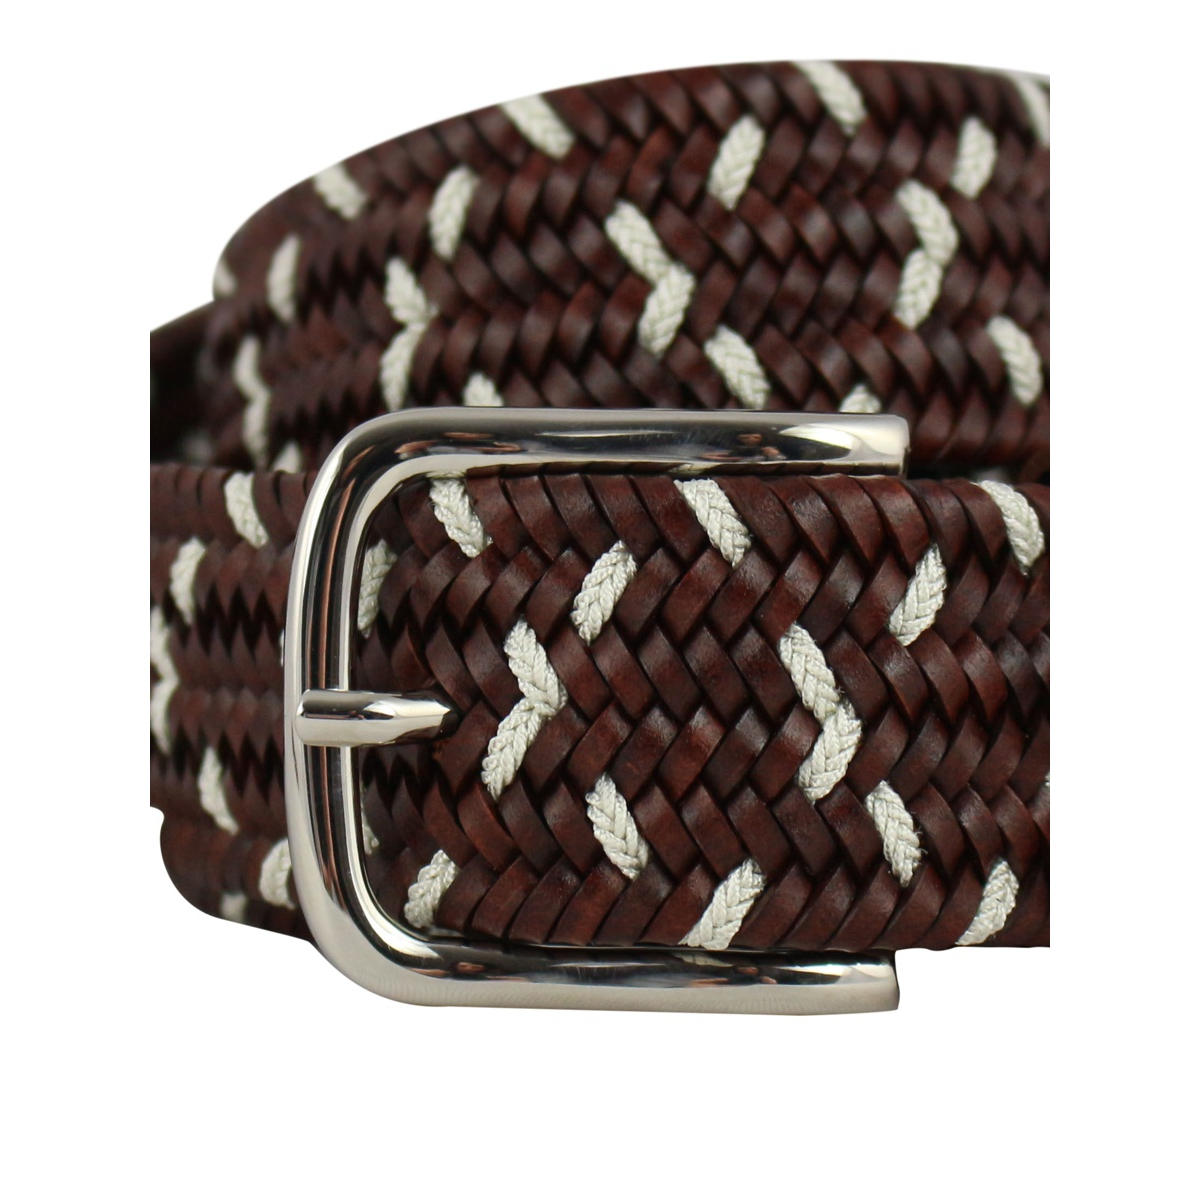 H 32 woven leather belt Leather SERGIO GAVAZZENI